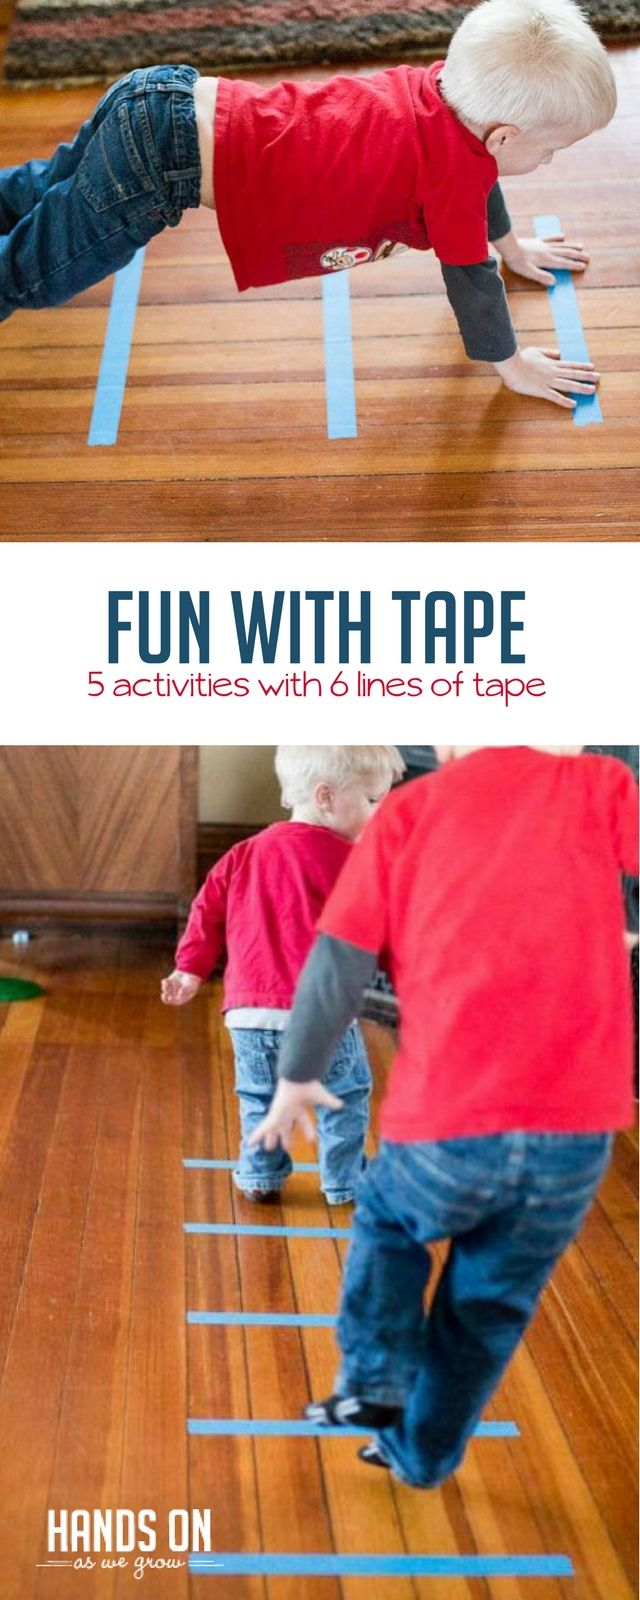 Build gross motors and have fun with 6 simple lines of tape and 5 easy activities that are loads of fun! via @handsonaswegrow